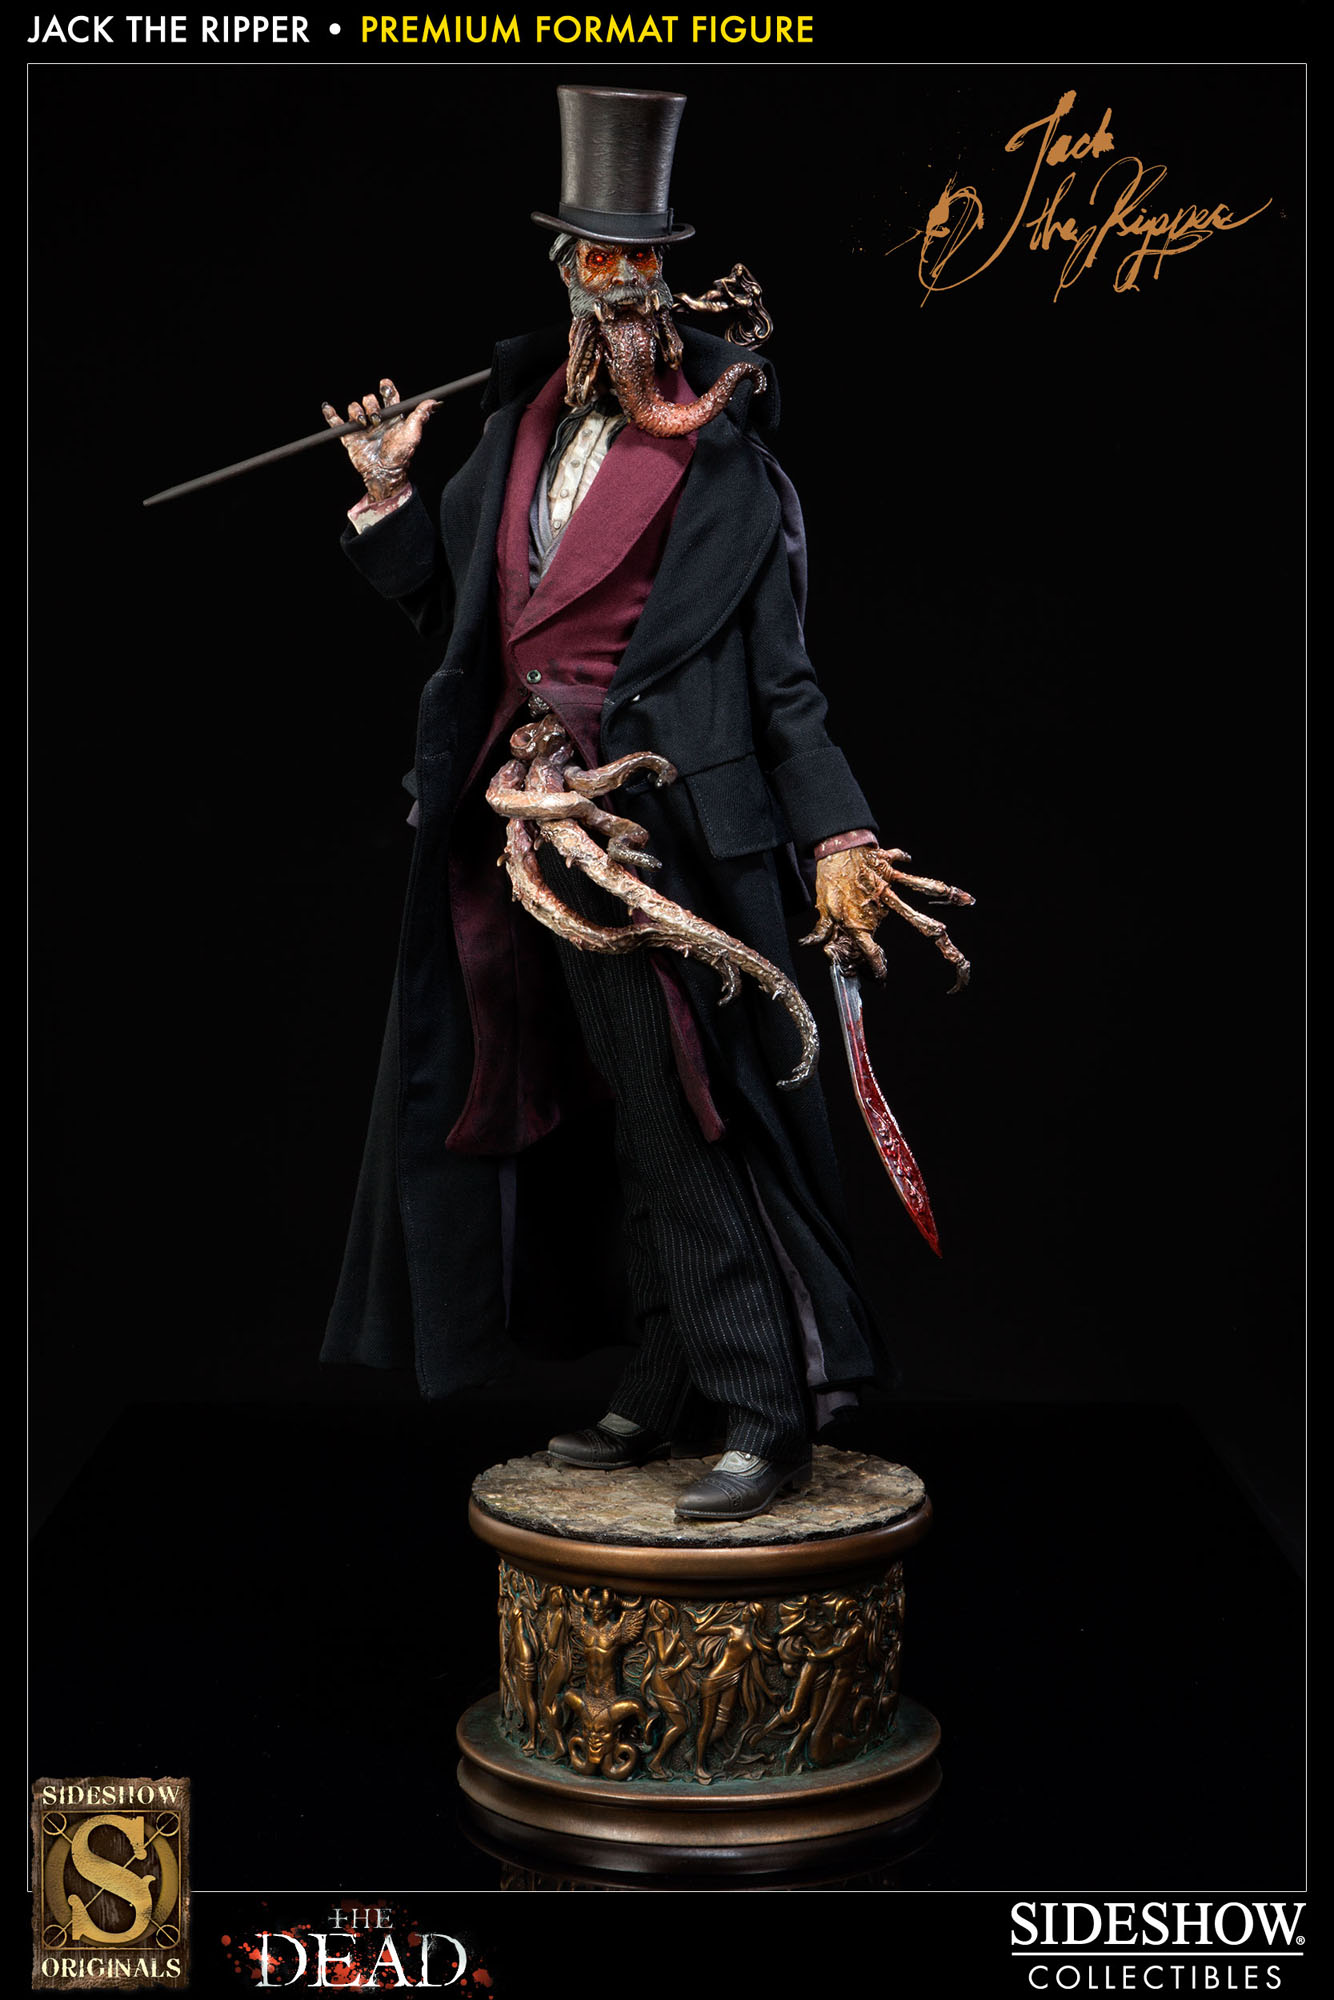 jack the ripper premium format figure